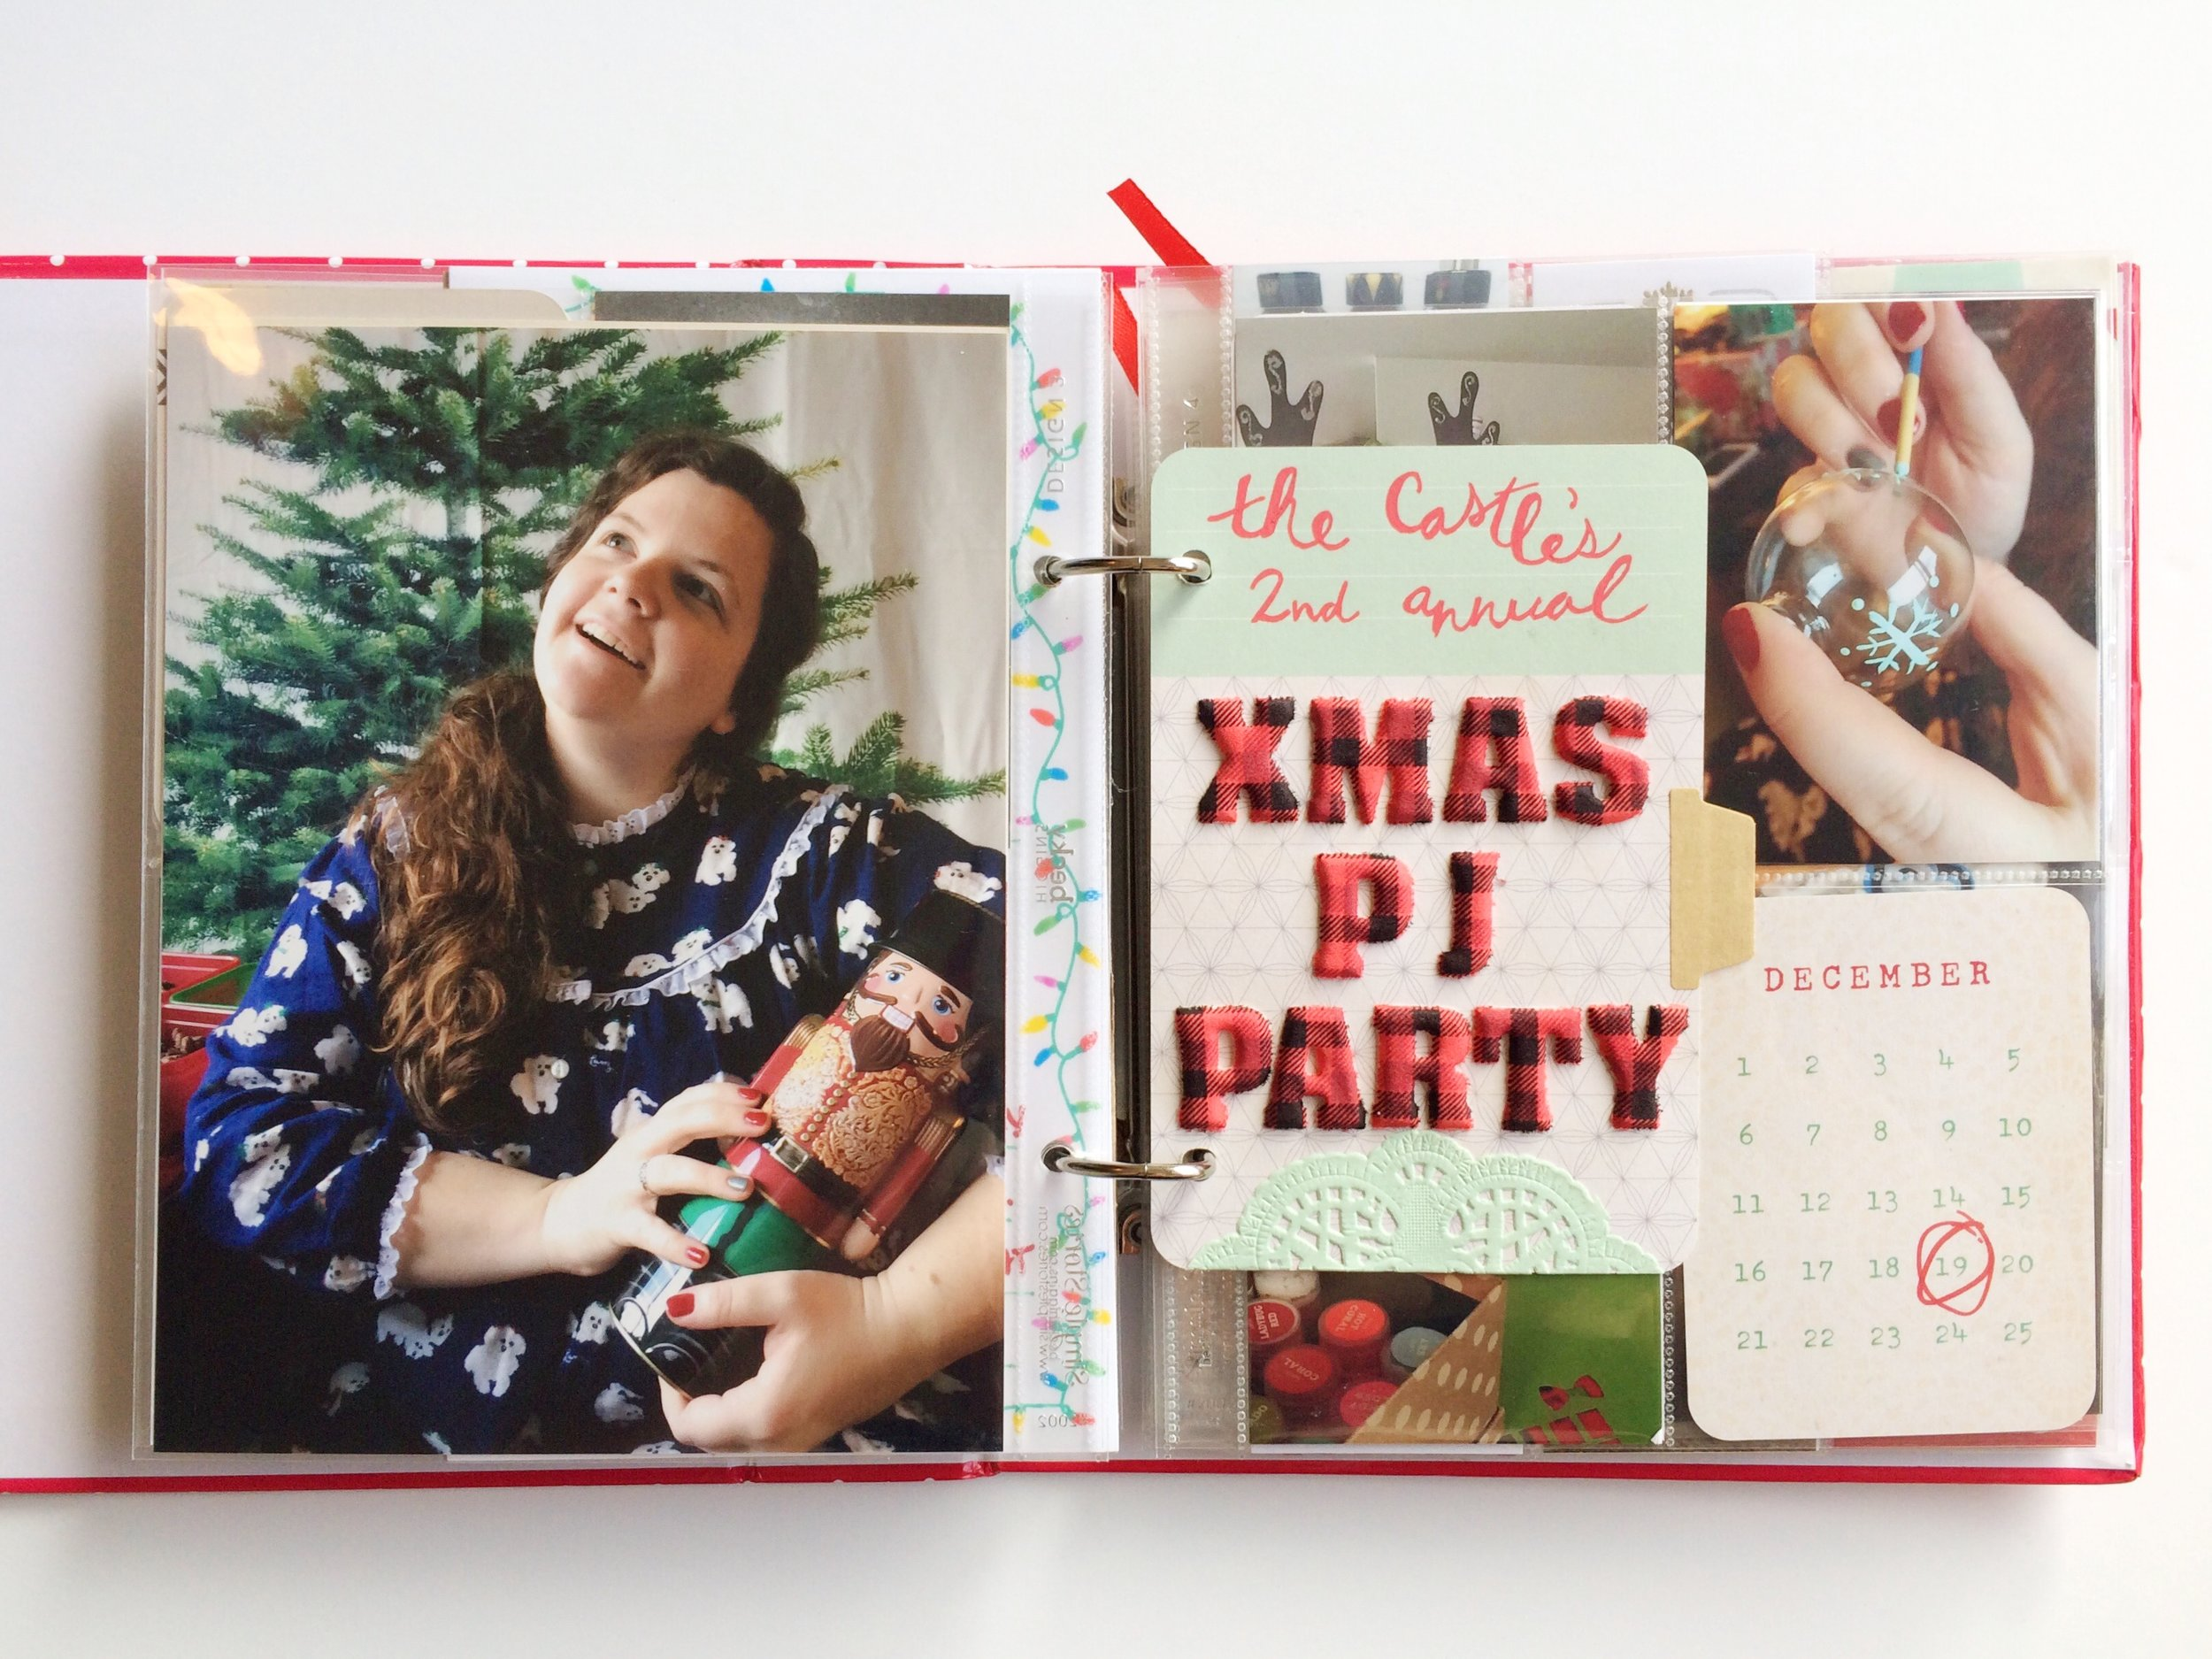 Day 19 was all about our annual Christmas party! We had a Christmas pajama party and movie marathon, complete with crafting, a cocoa bar, and a white elephant gift exchange.